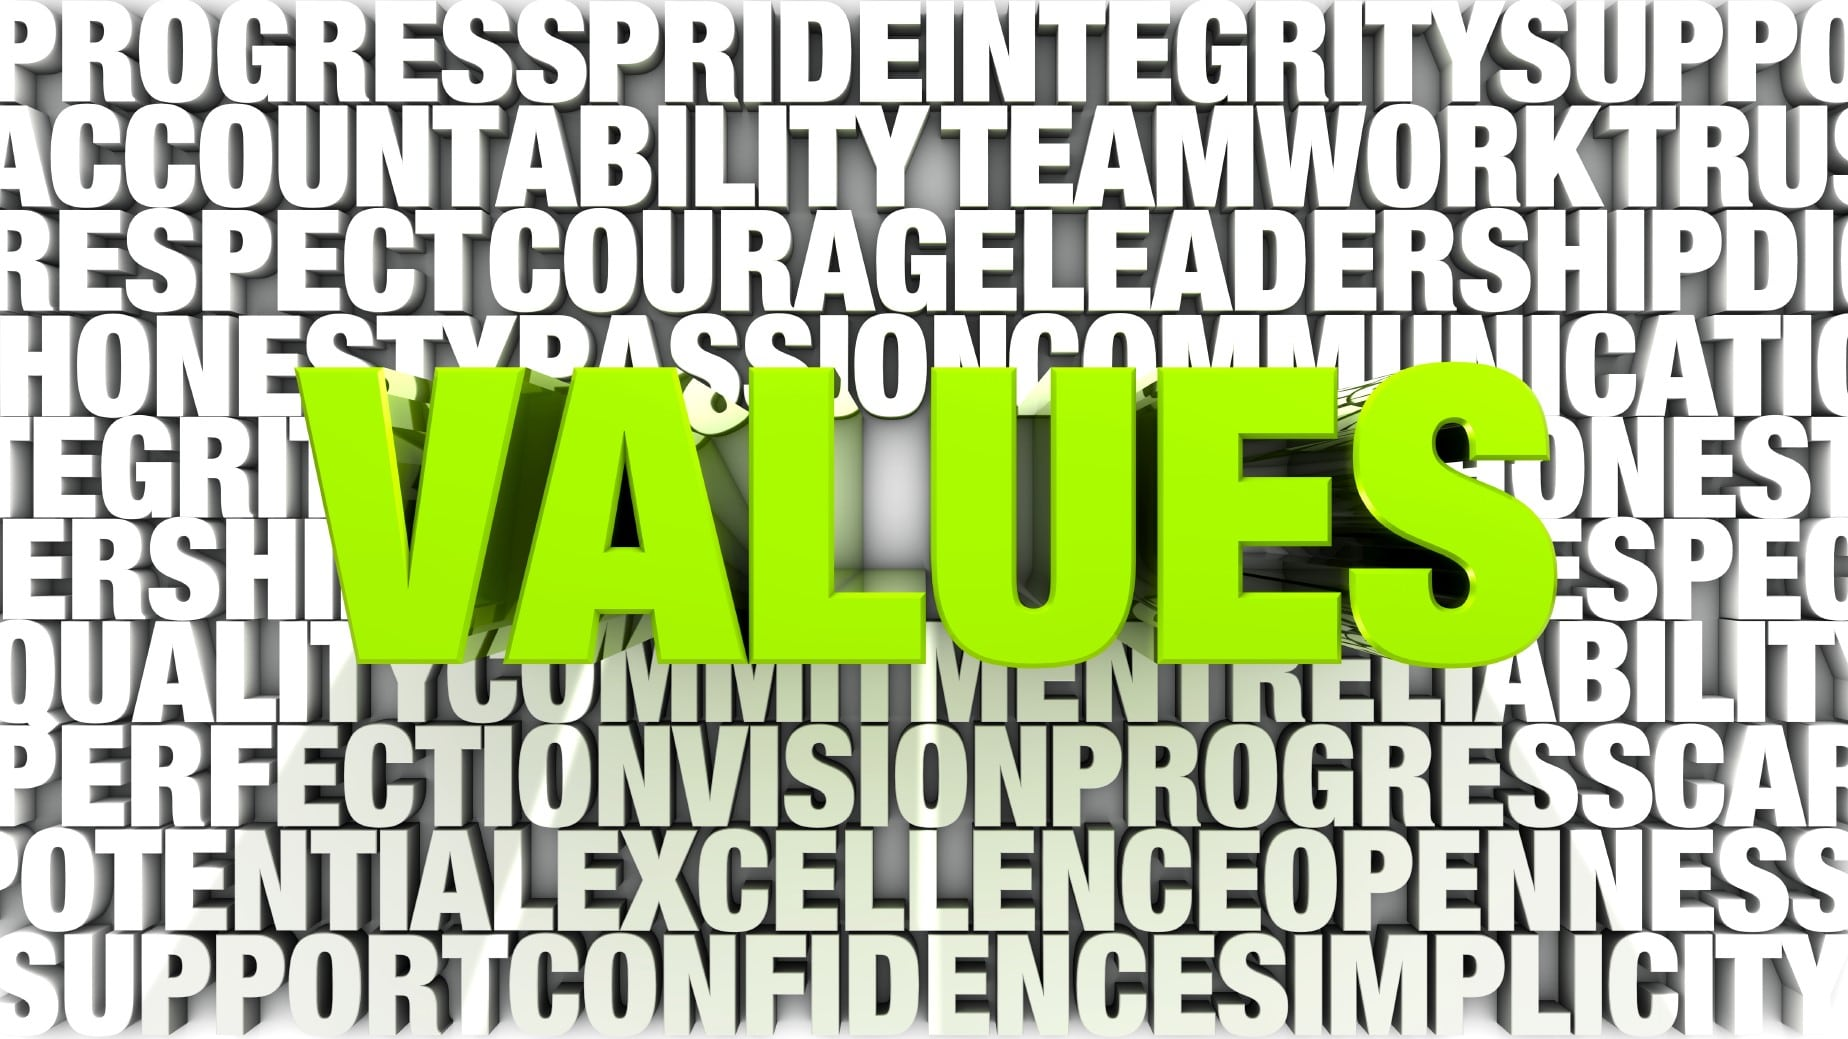 Leadership Authors and Business Speakers Bob Vanourek and Greg Vanourek, feature guest blogger Harvey Kaufman, who uses the image of the word values over a group of words that are considered values to show the importance of values in buisness